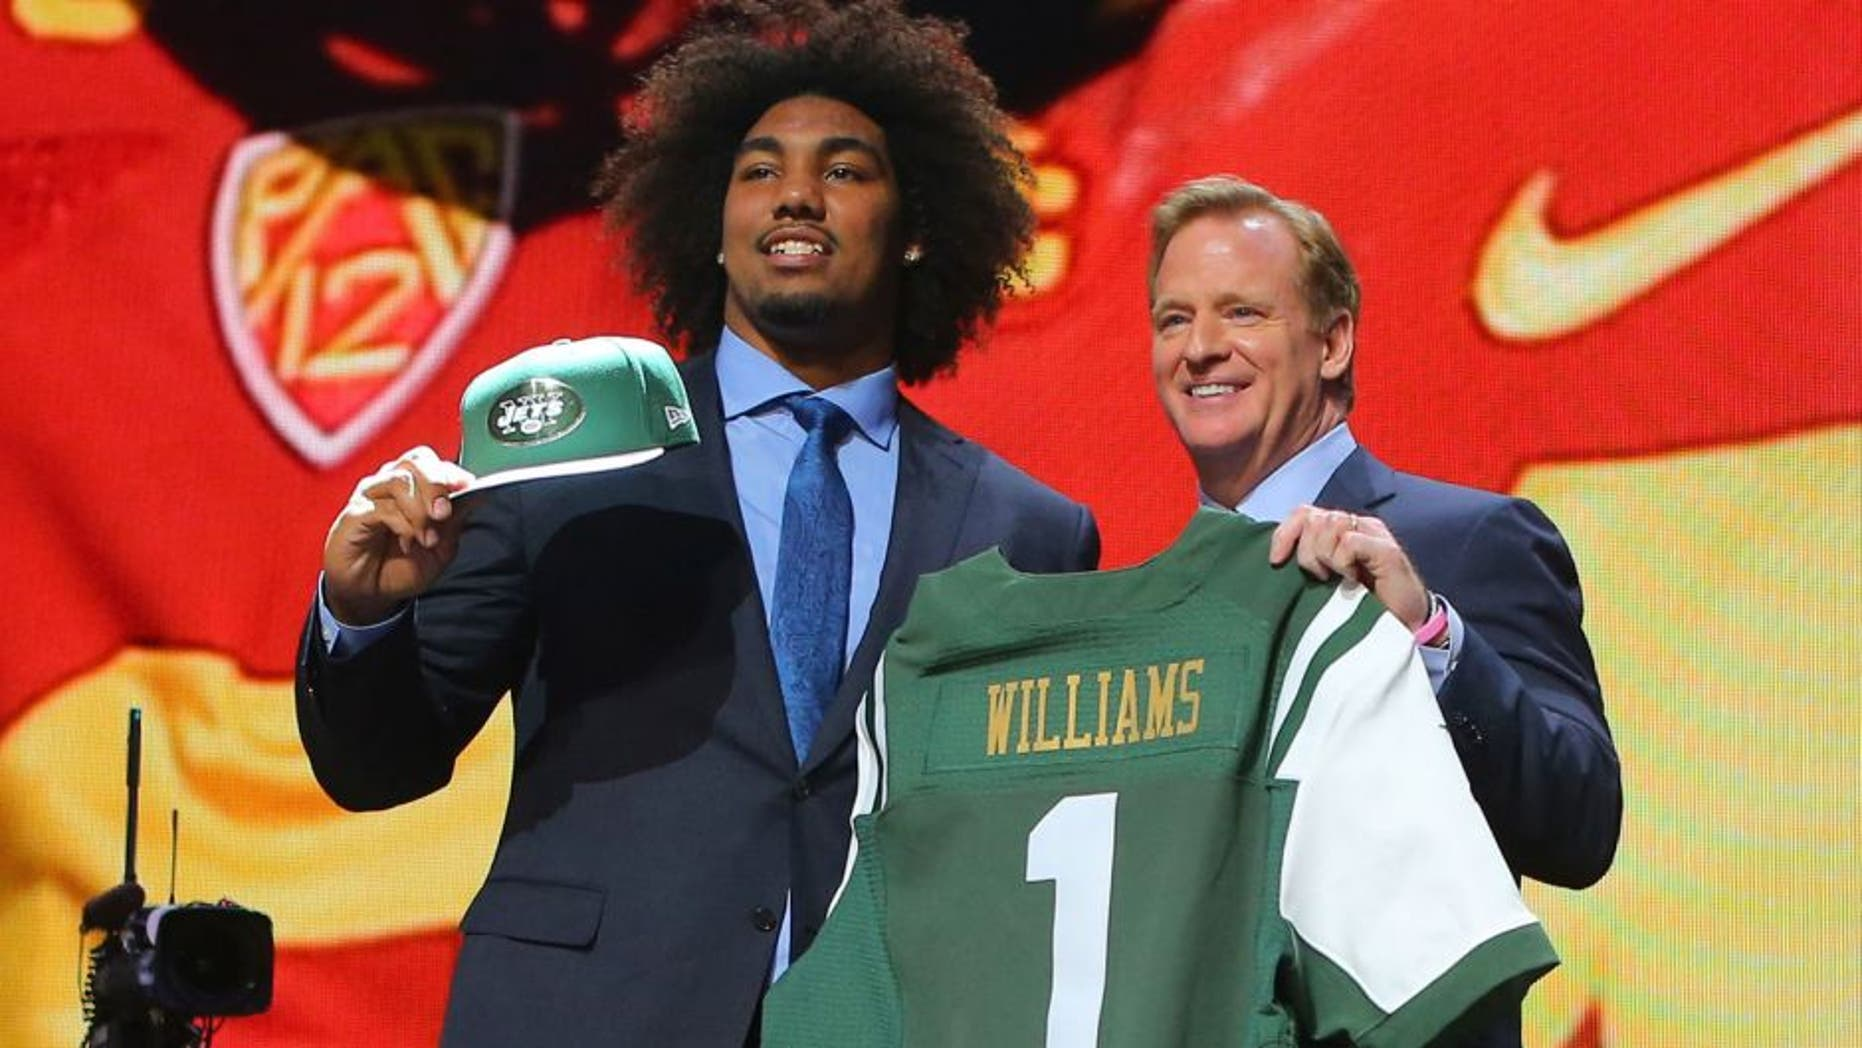 Apr 30, 2015; Chicago, IL, USA; Leonard Williams (Southern California) poses for a photo with NFL commissioner Roger Goodell after being selected as the number sixth overall pick to the New York Jets in the first round of the 2015 NFL Draft at the Auditorium Theatre of Roosevelt University. Mandatory Credit: Dennis Wierzbicki-USA TODAY Sports